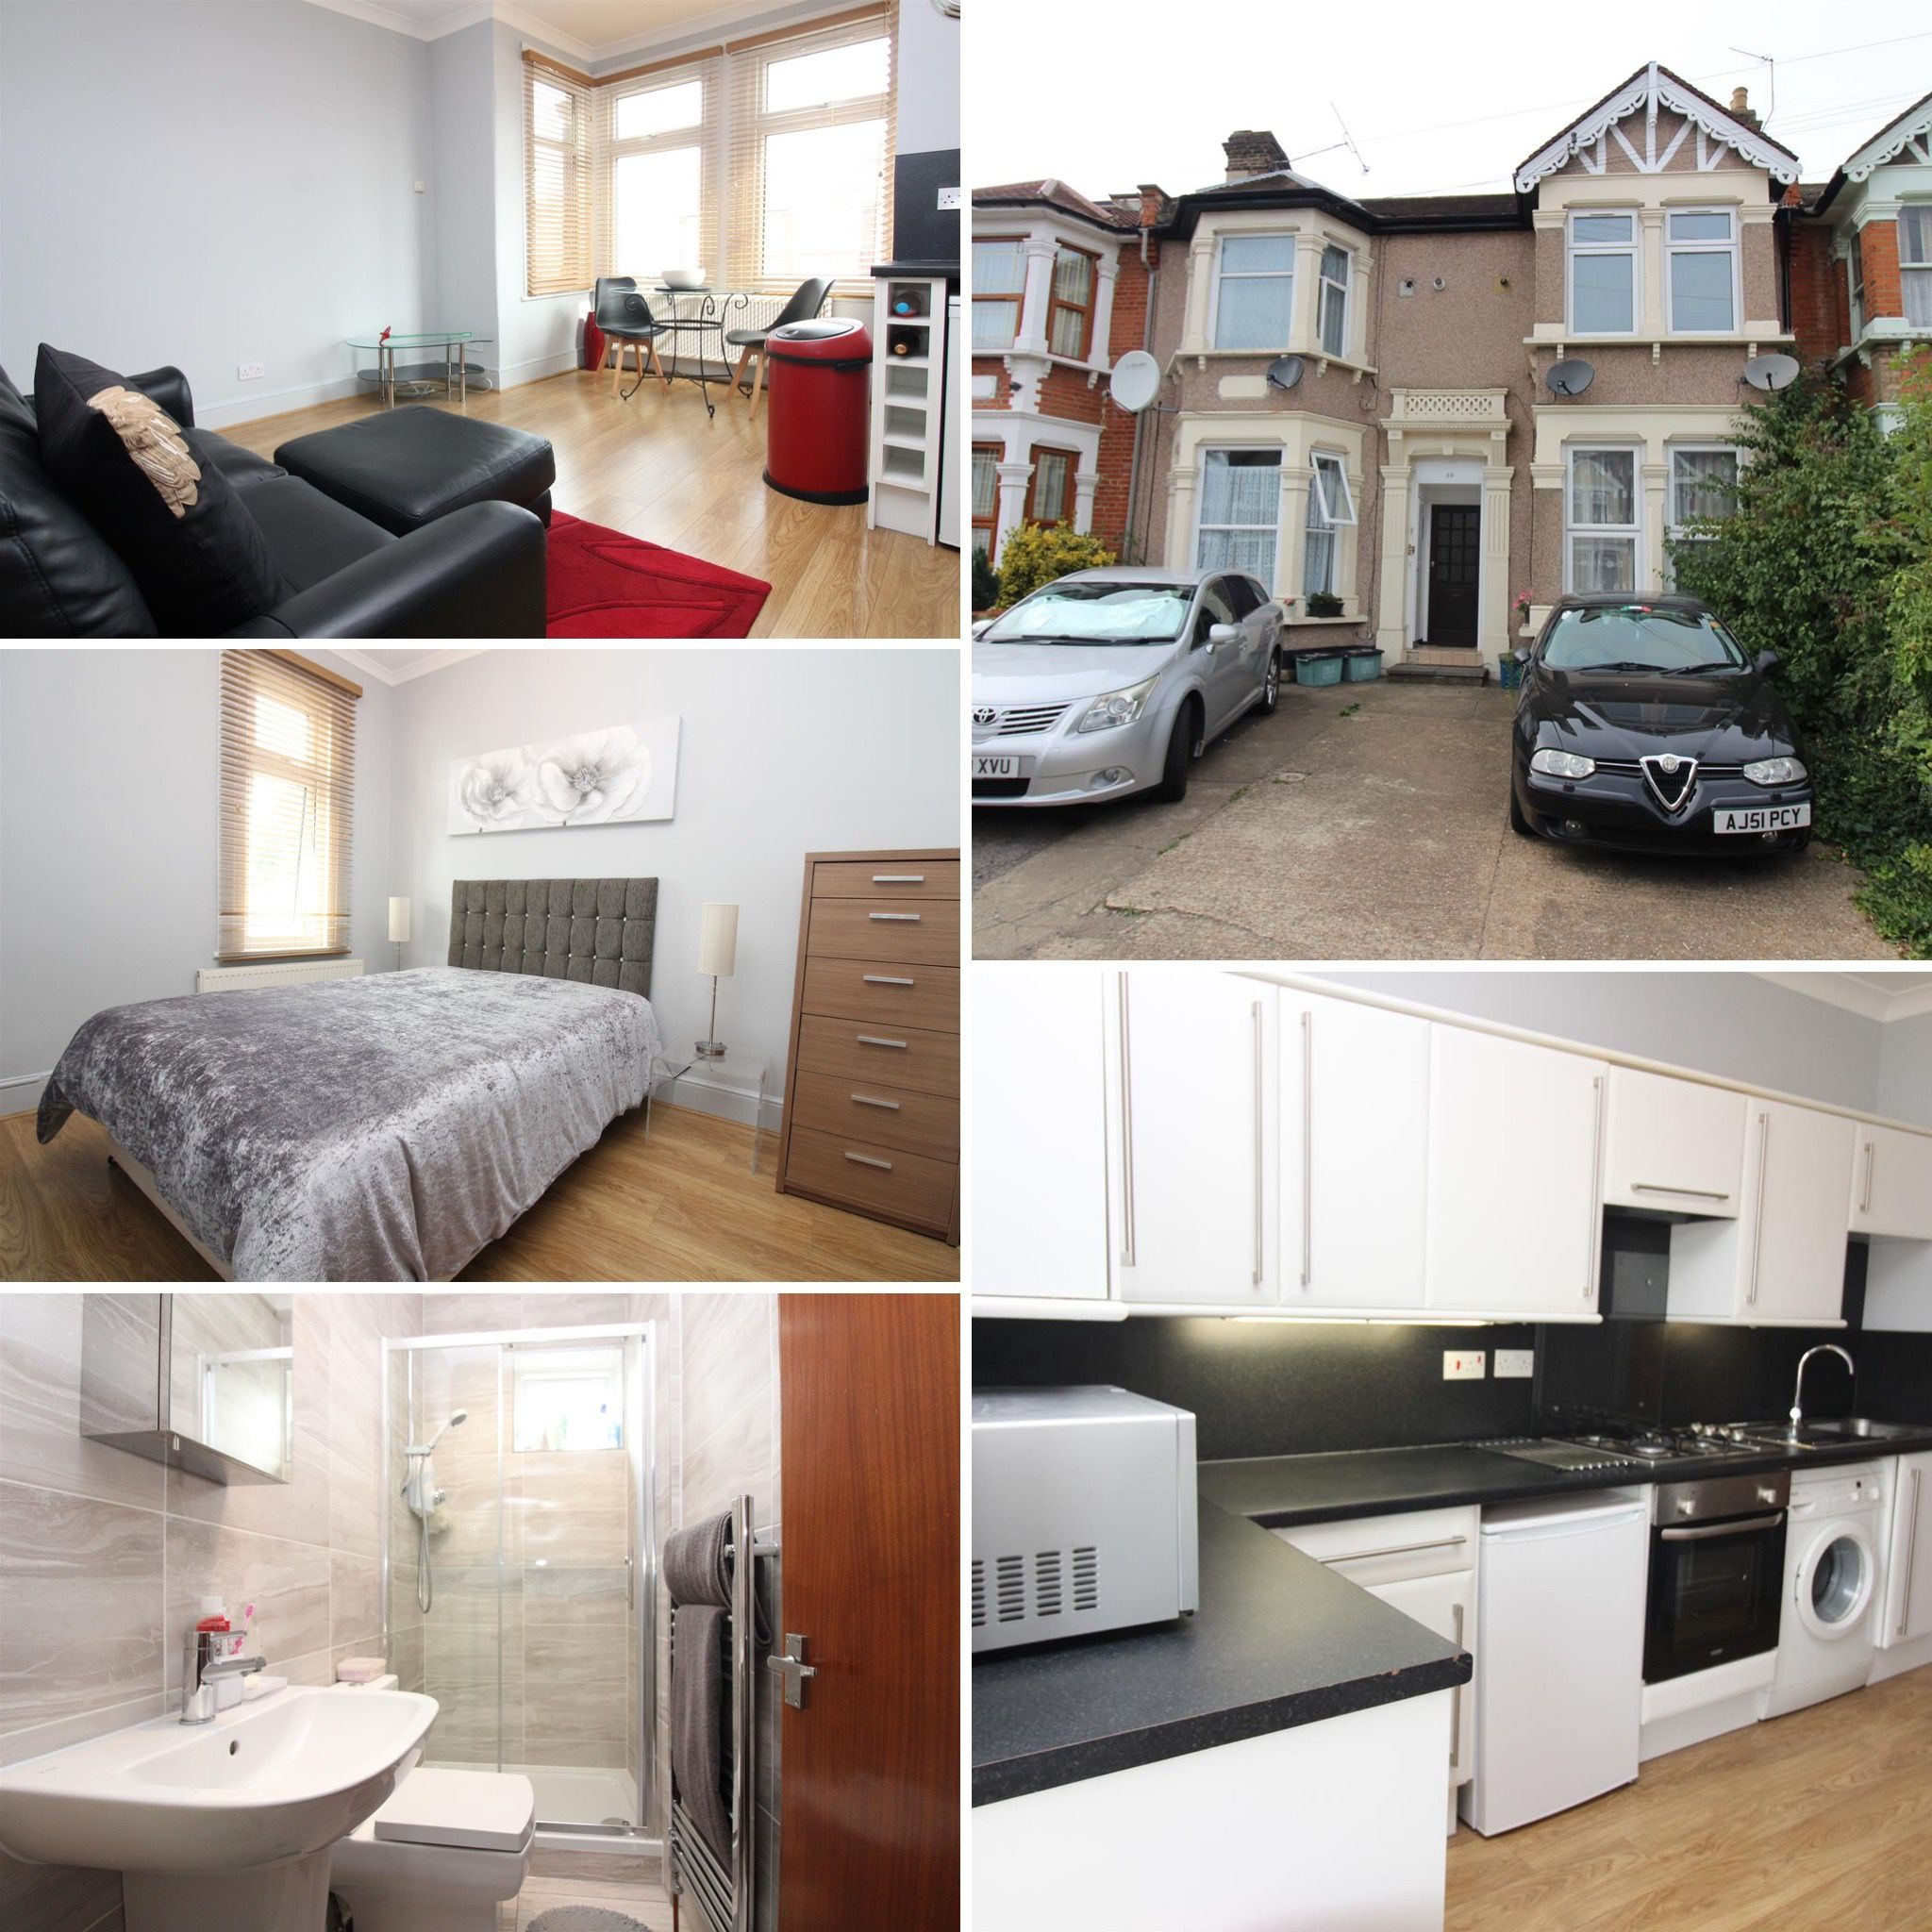 1 double bedroom flat to rent in Ilford Flat rent